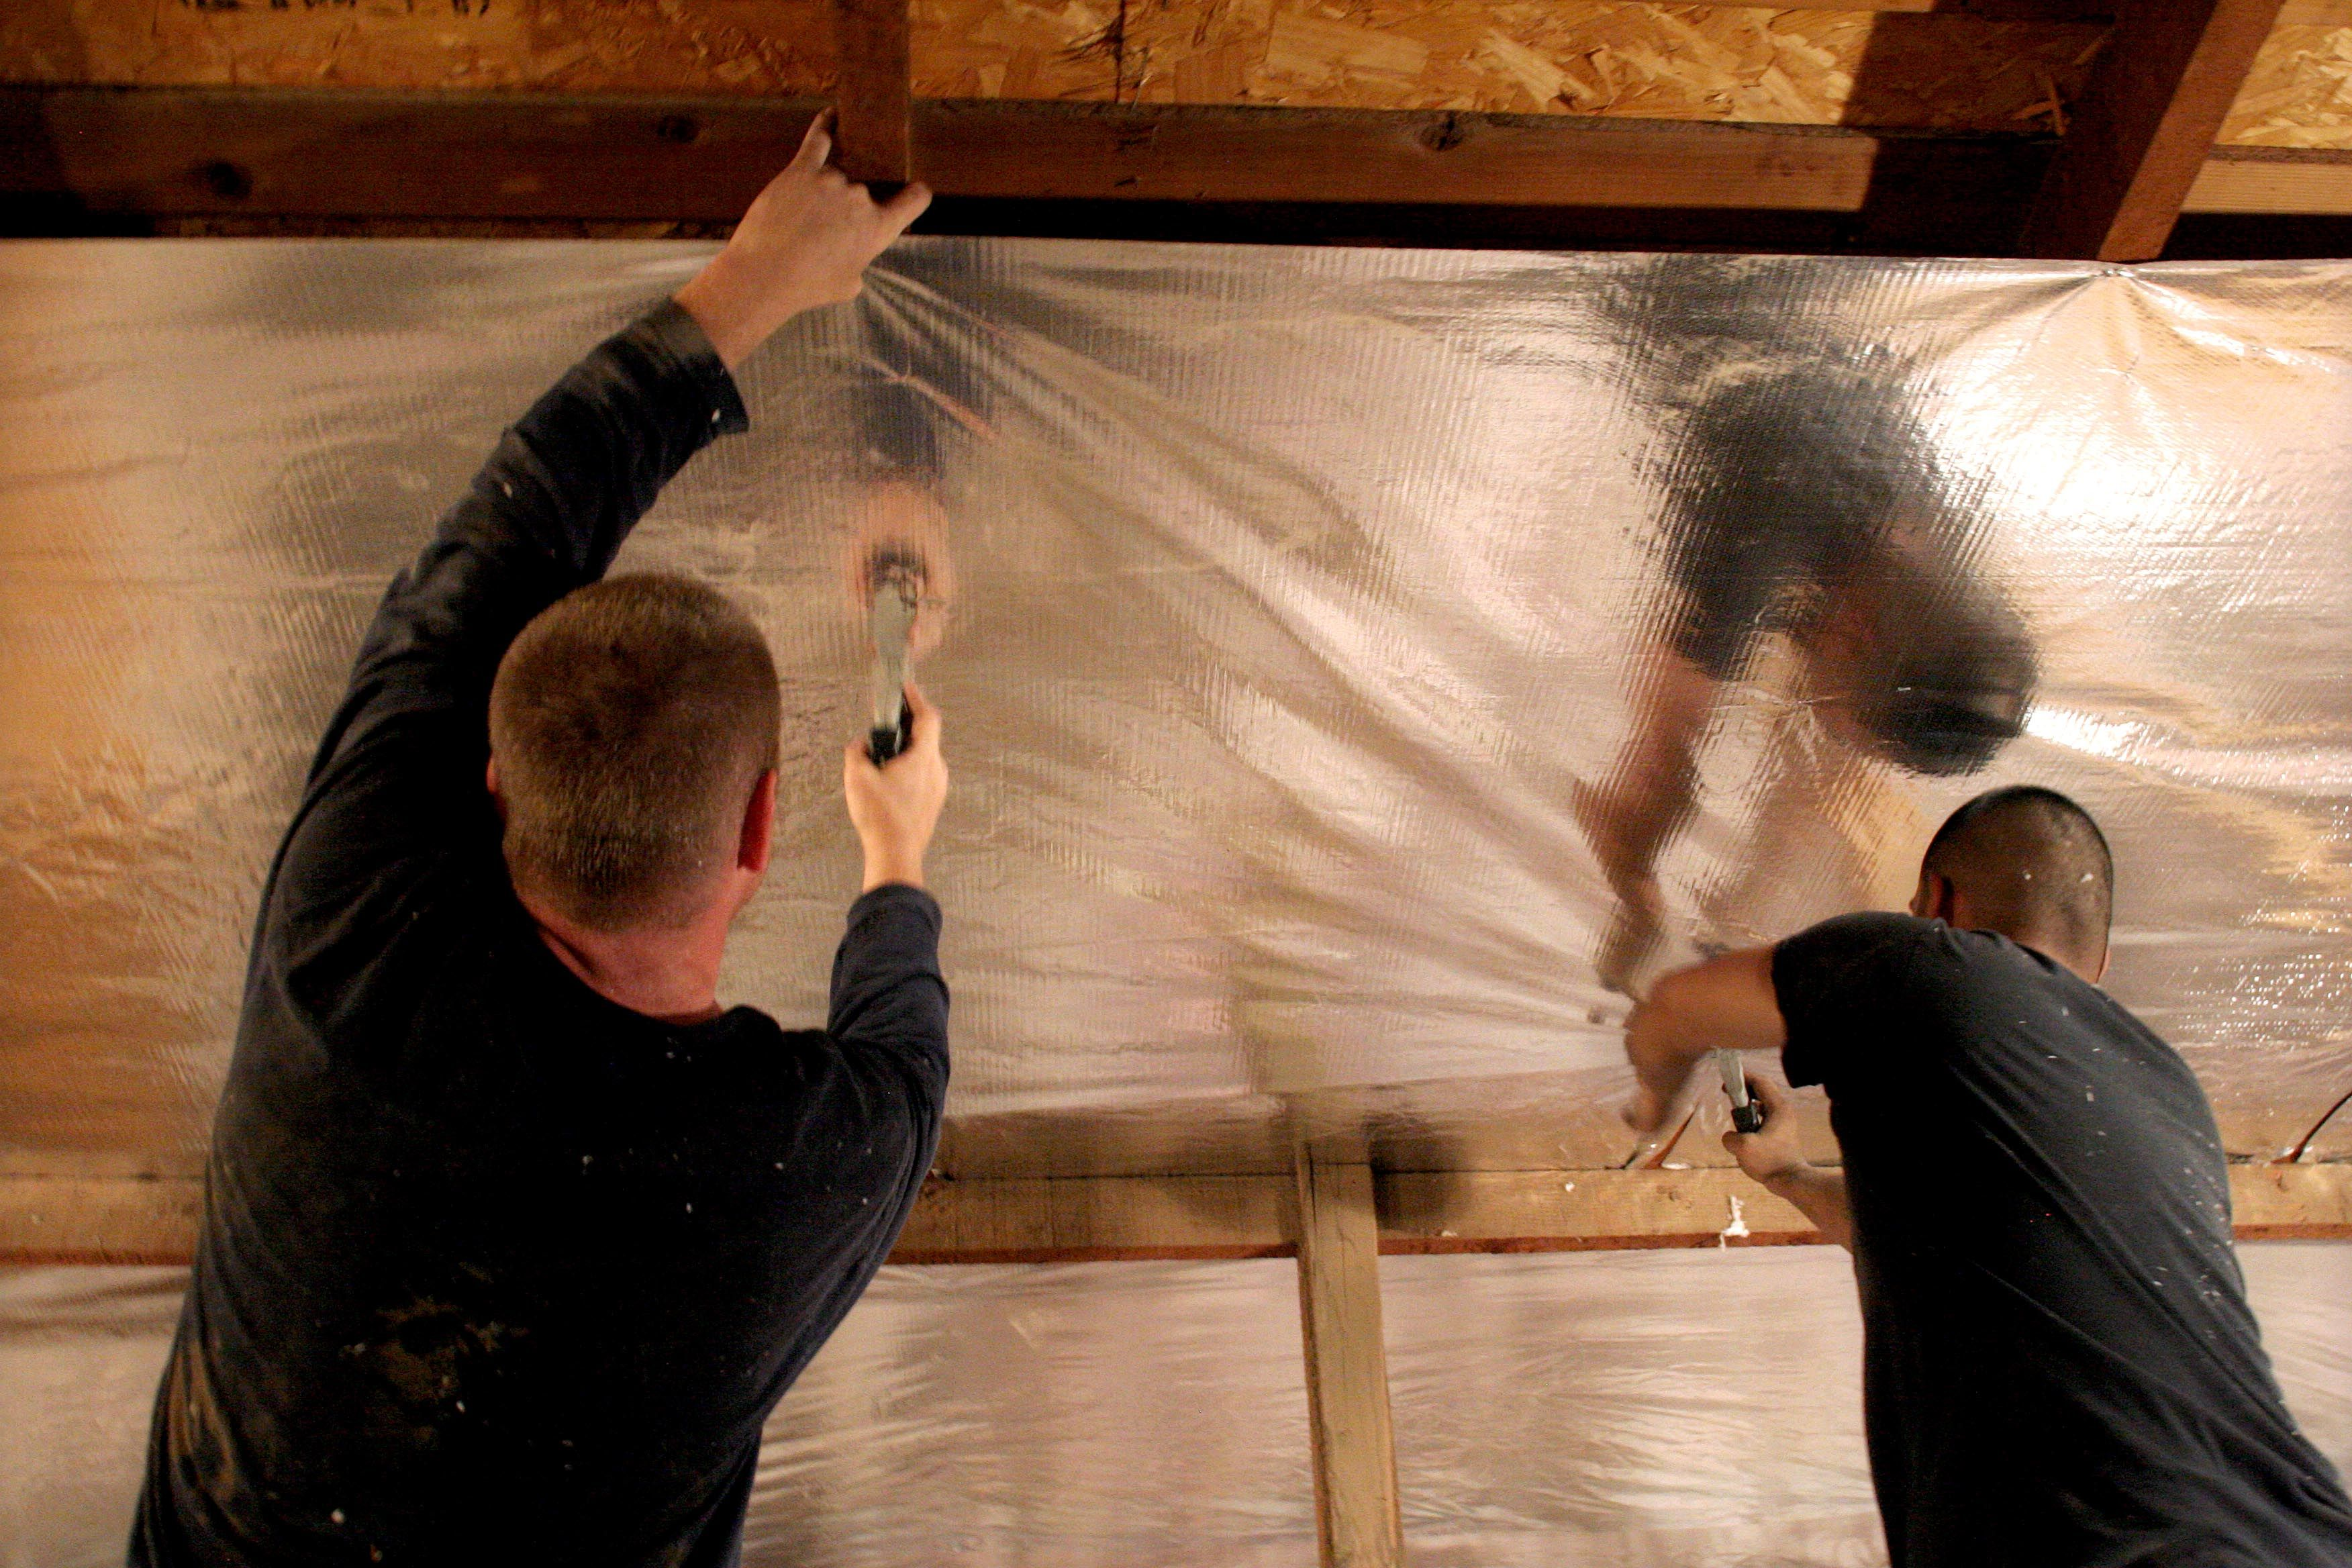 Remove Attic Insulation Rodent Fire Flood Damage Radiant Barrier Blown In Insulation Attic Insulation Removal